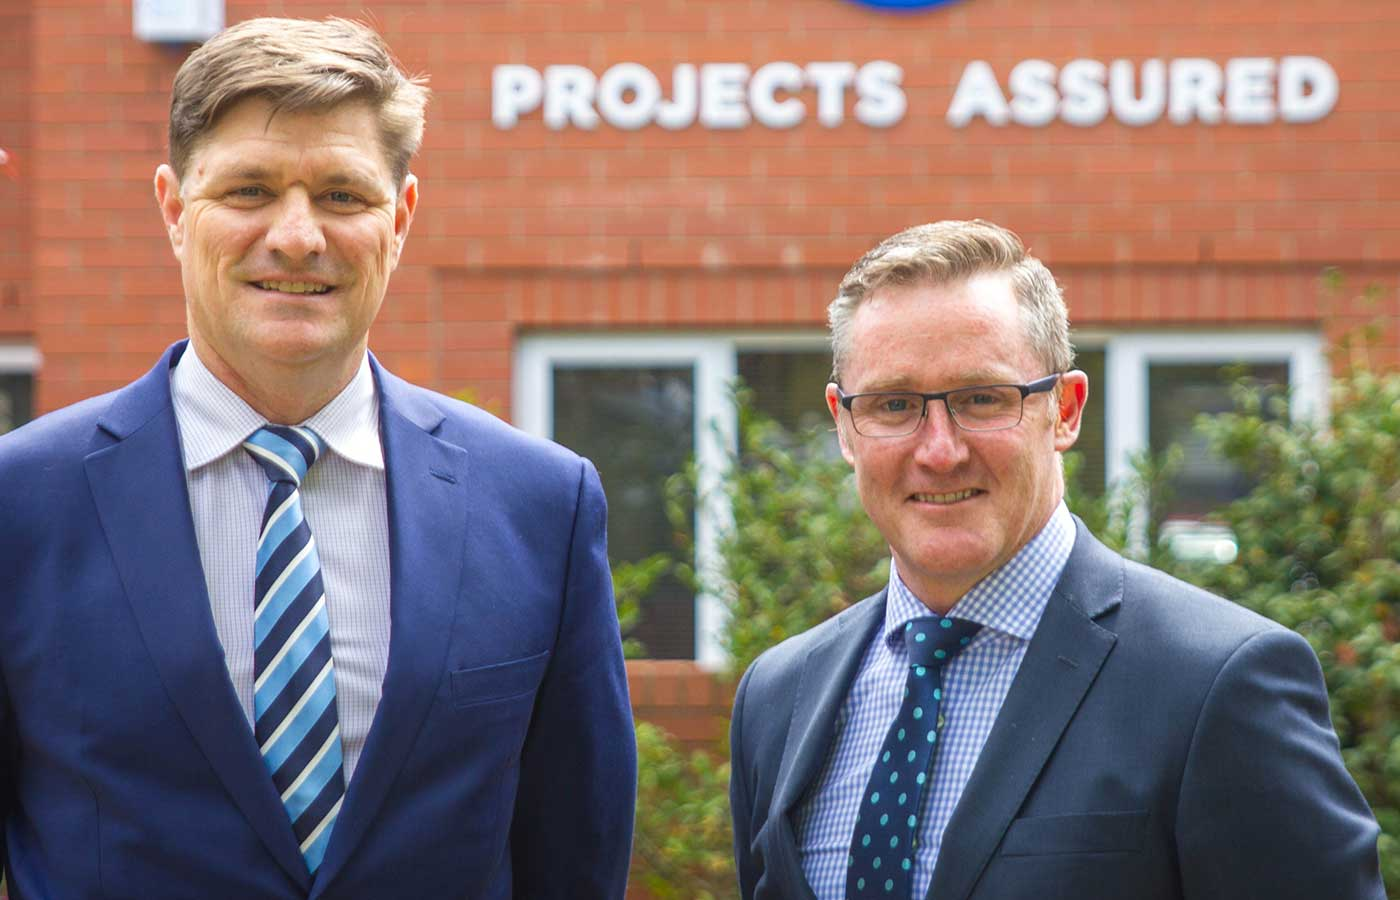 Canberra's Projects Assured scores $4m Department of Human Services contract